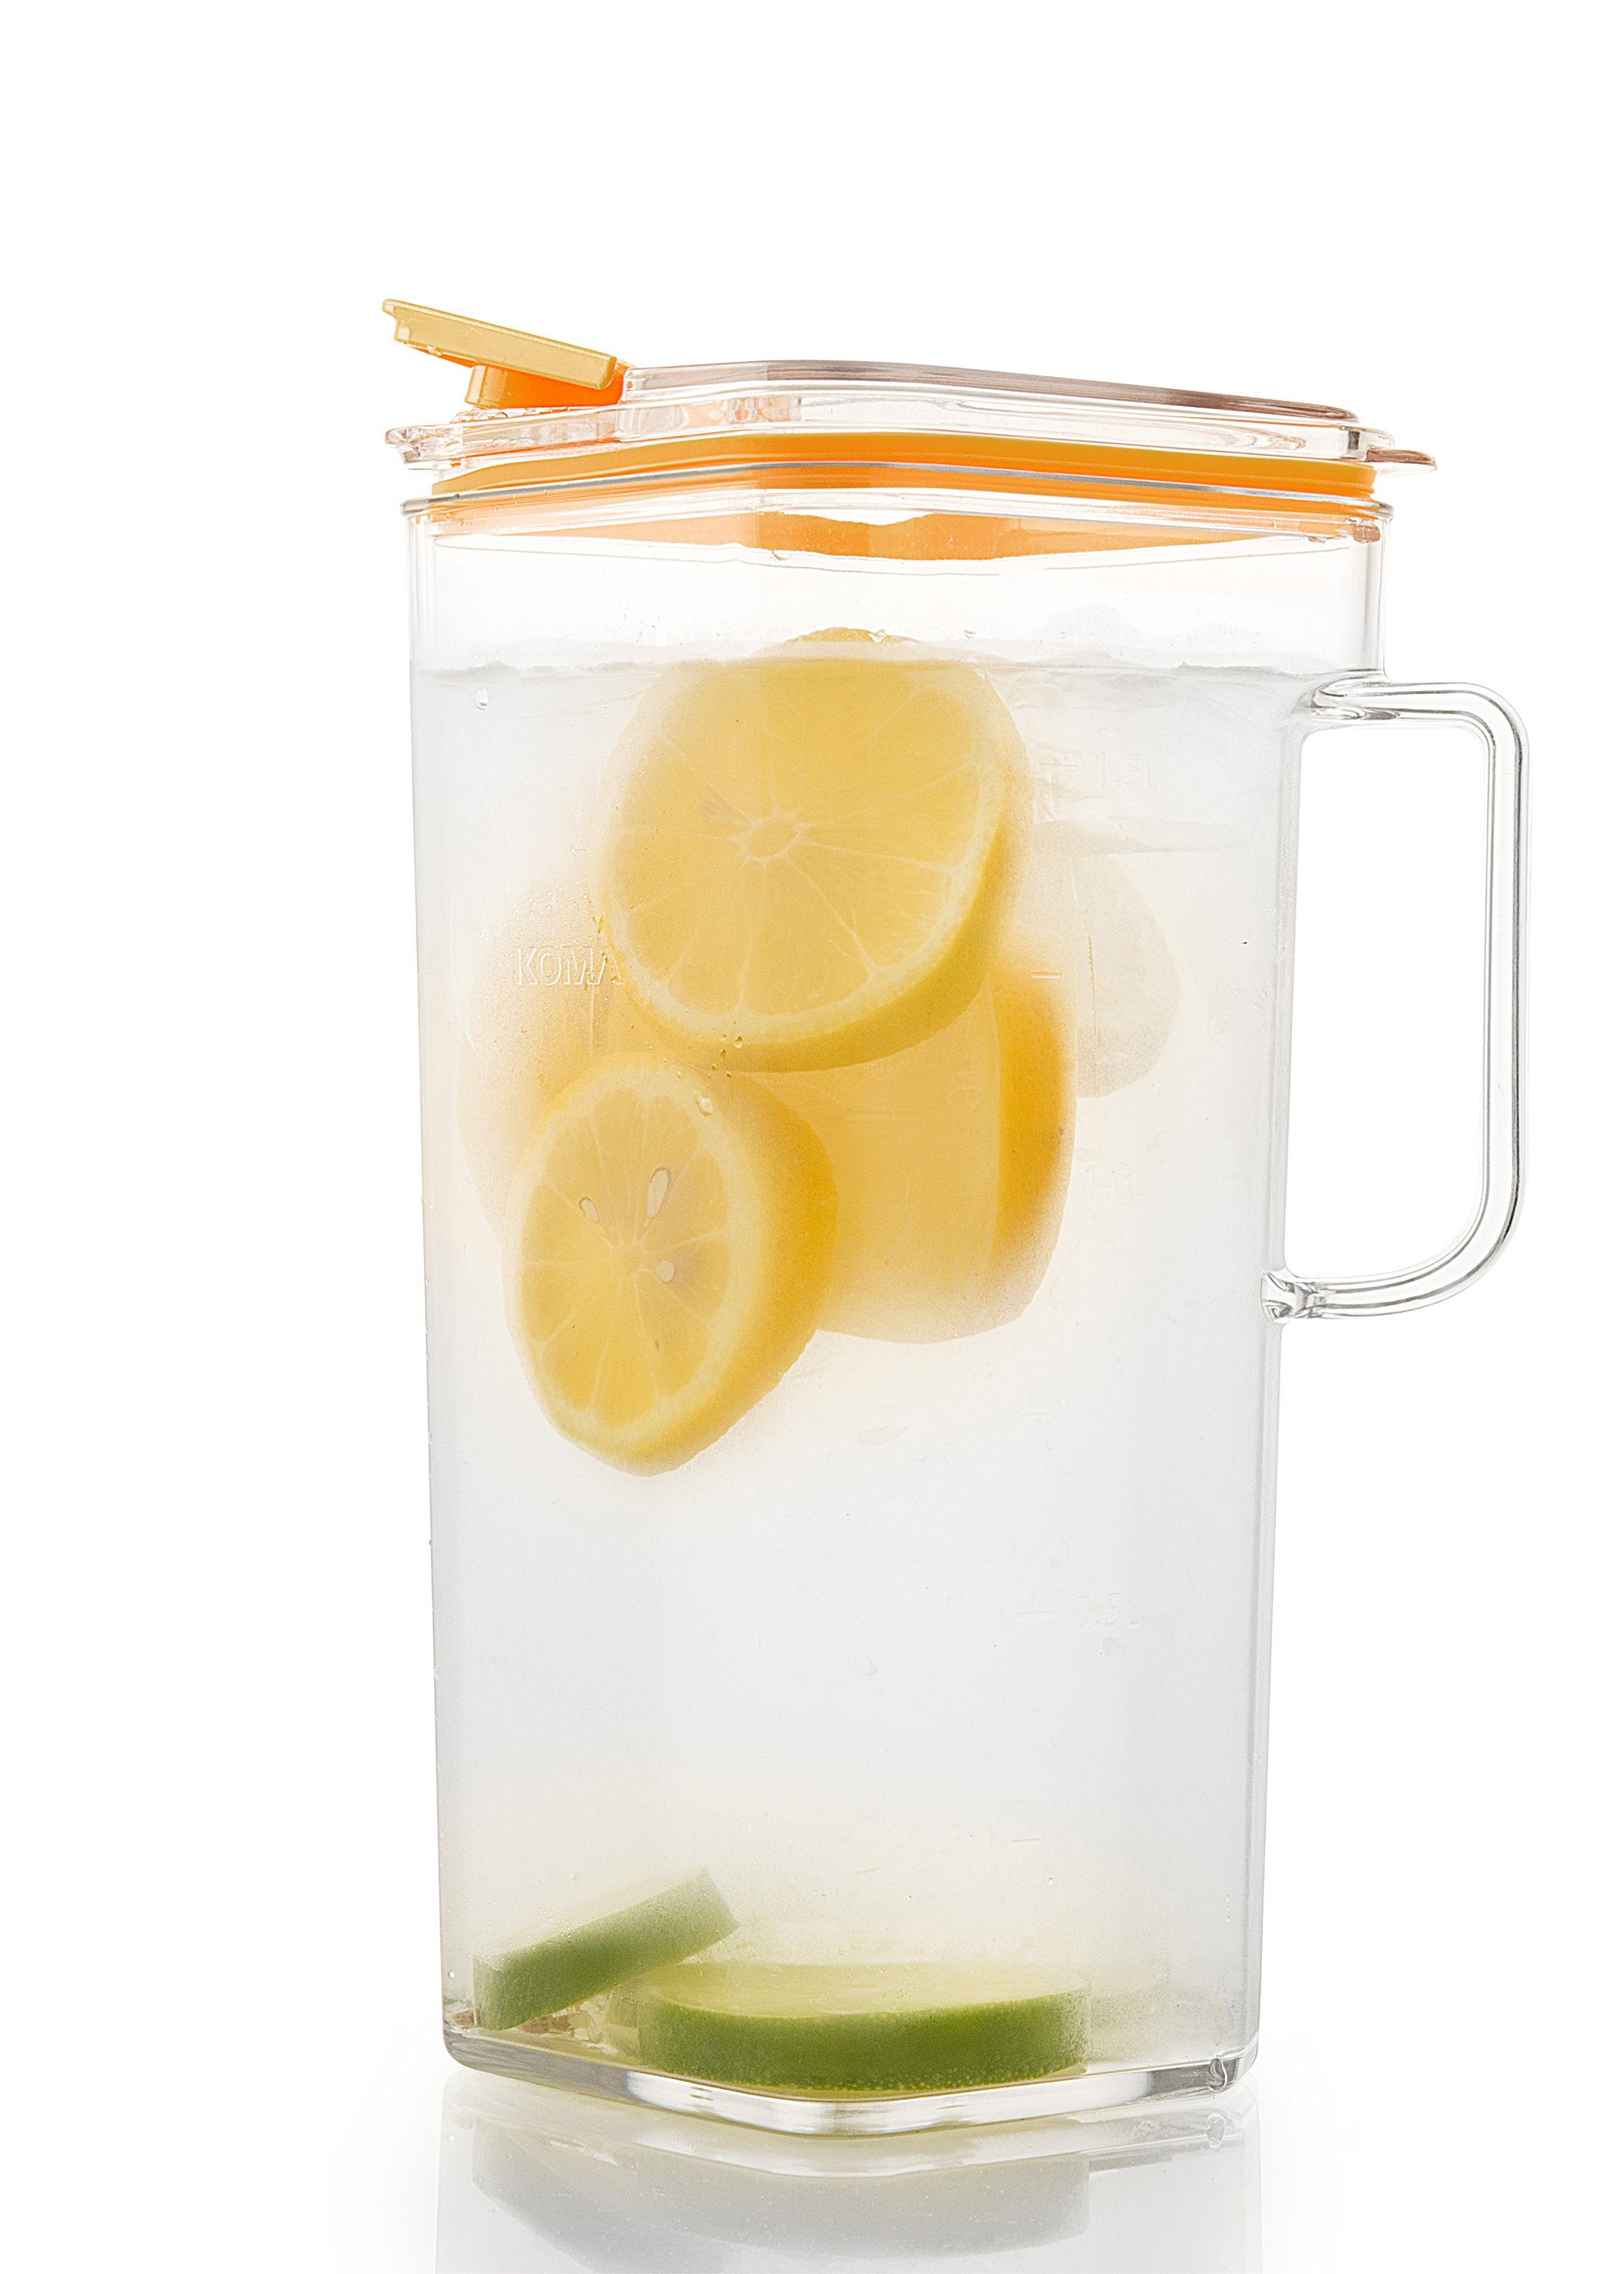 Komax Tritan Clear Large (2 quart) Pitcher With Orange Lid BPA-Free - Great for Iced tea & Water by Komax (Image #2)